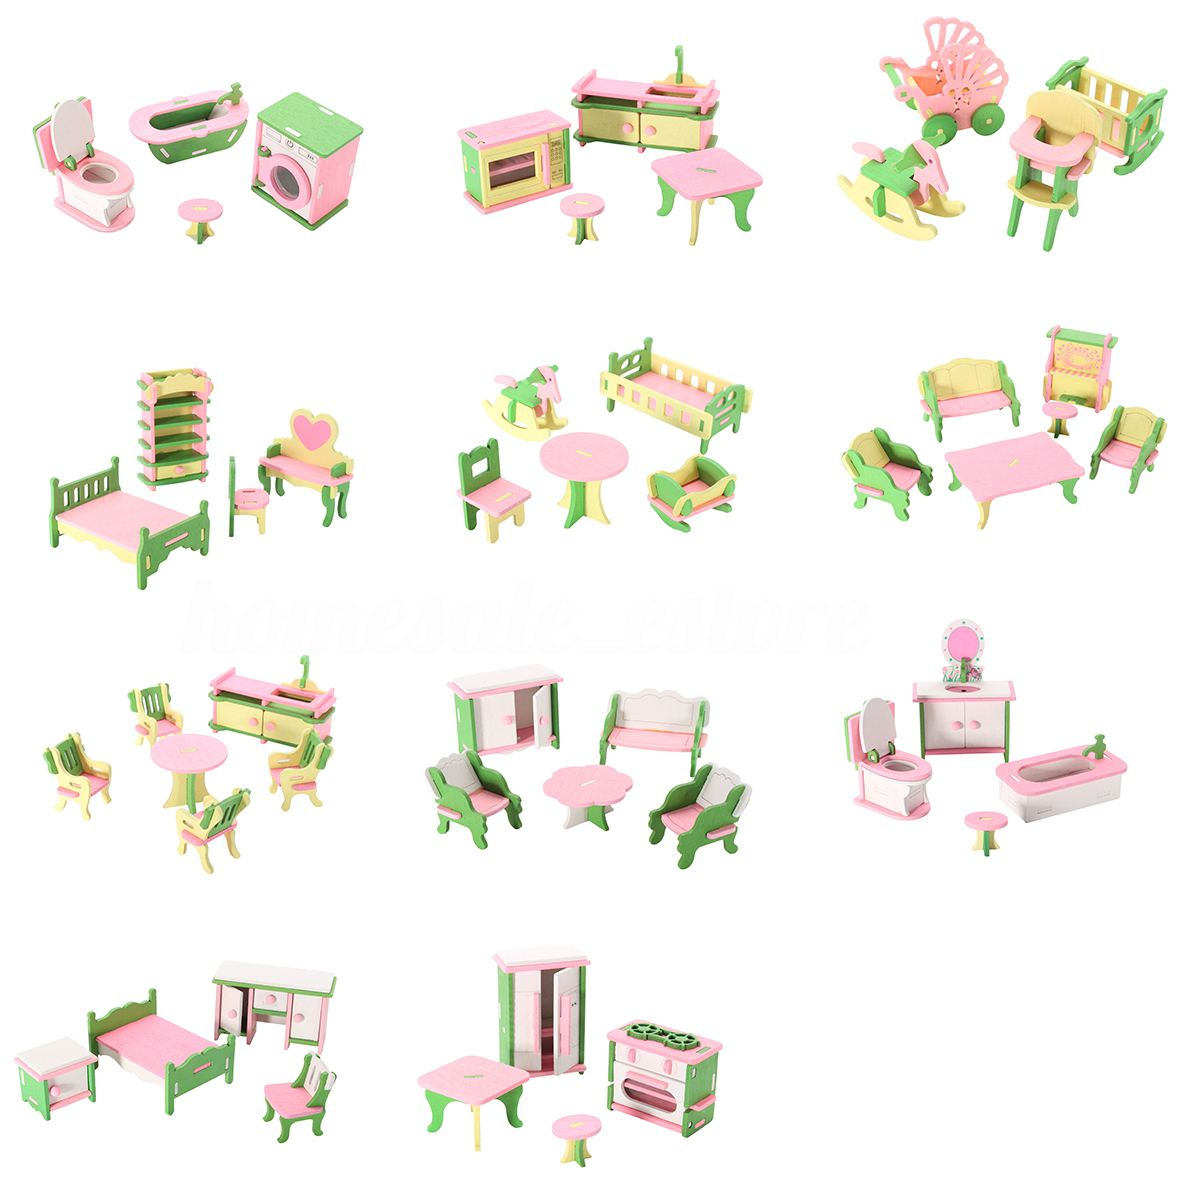 LCLL-49Pcs 11 Sets Baby Wooden Furniture Dolls House Miniature Child Play Toys Gifts